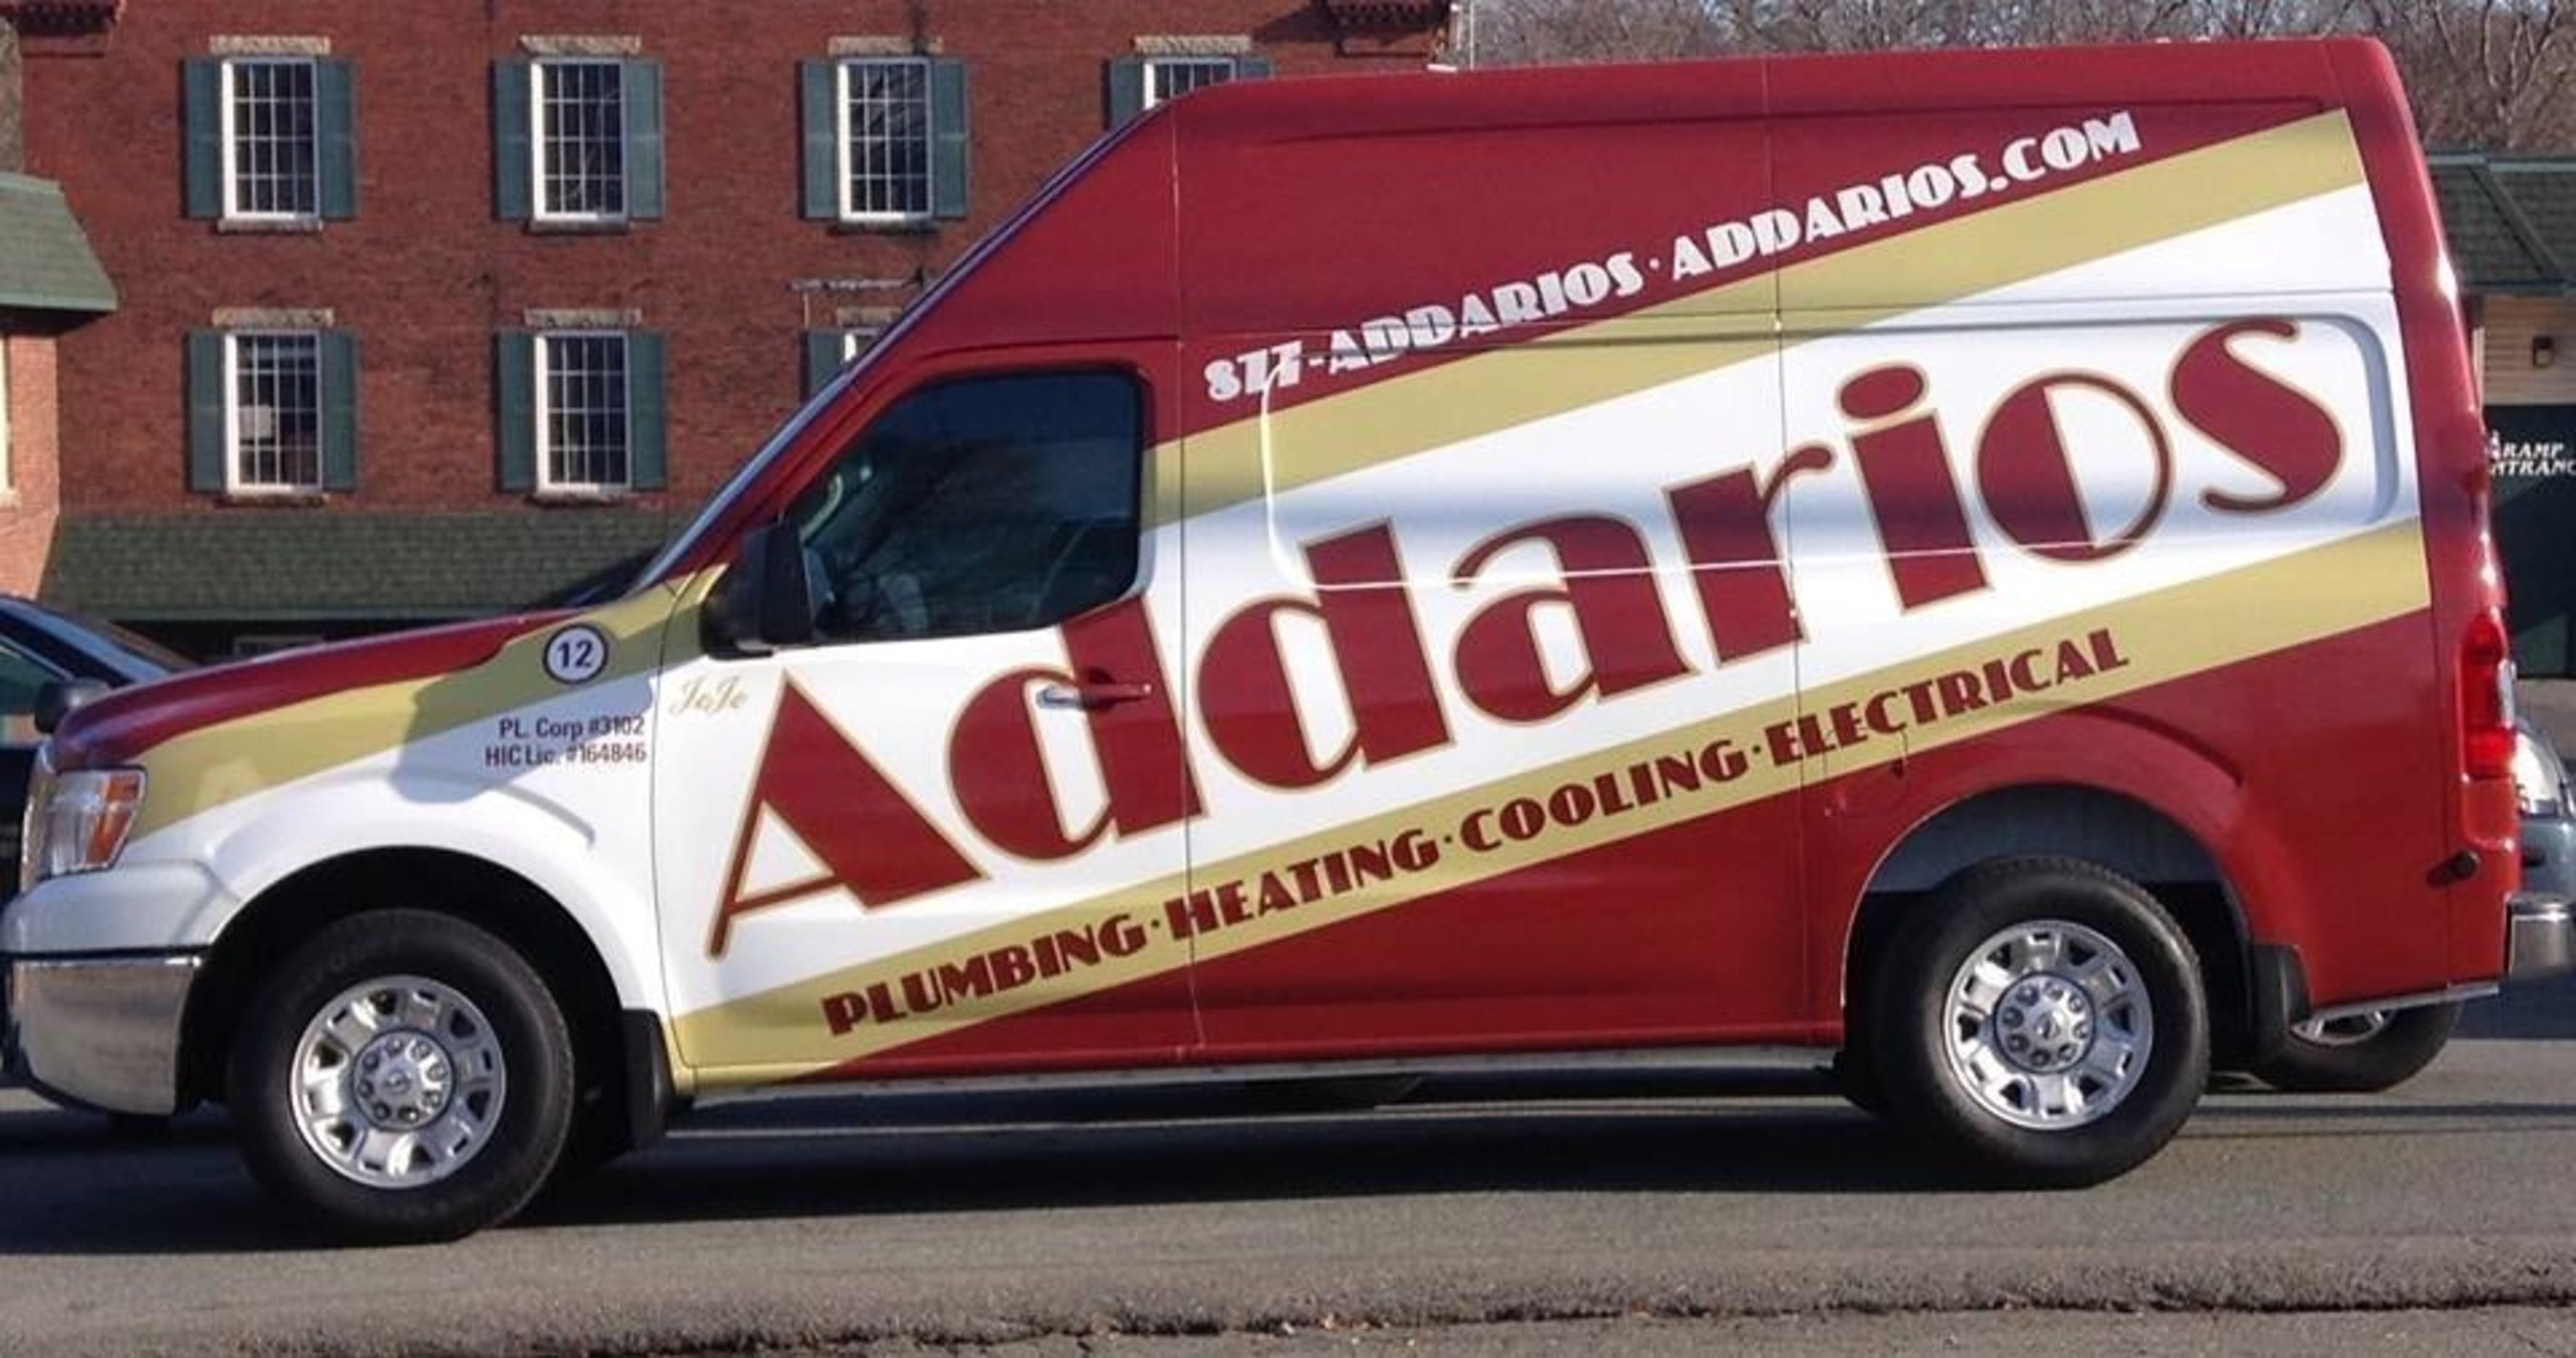 Addarios Now Offers OneDay Bathroom Remodeling Services